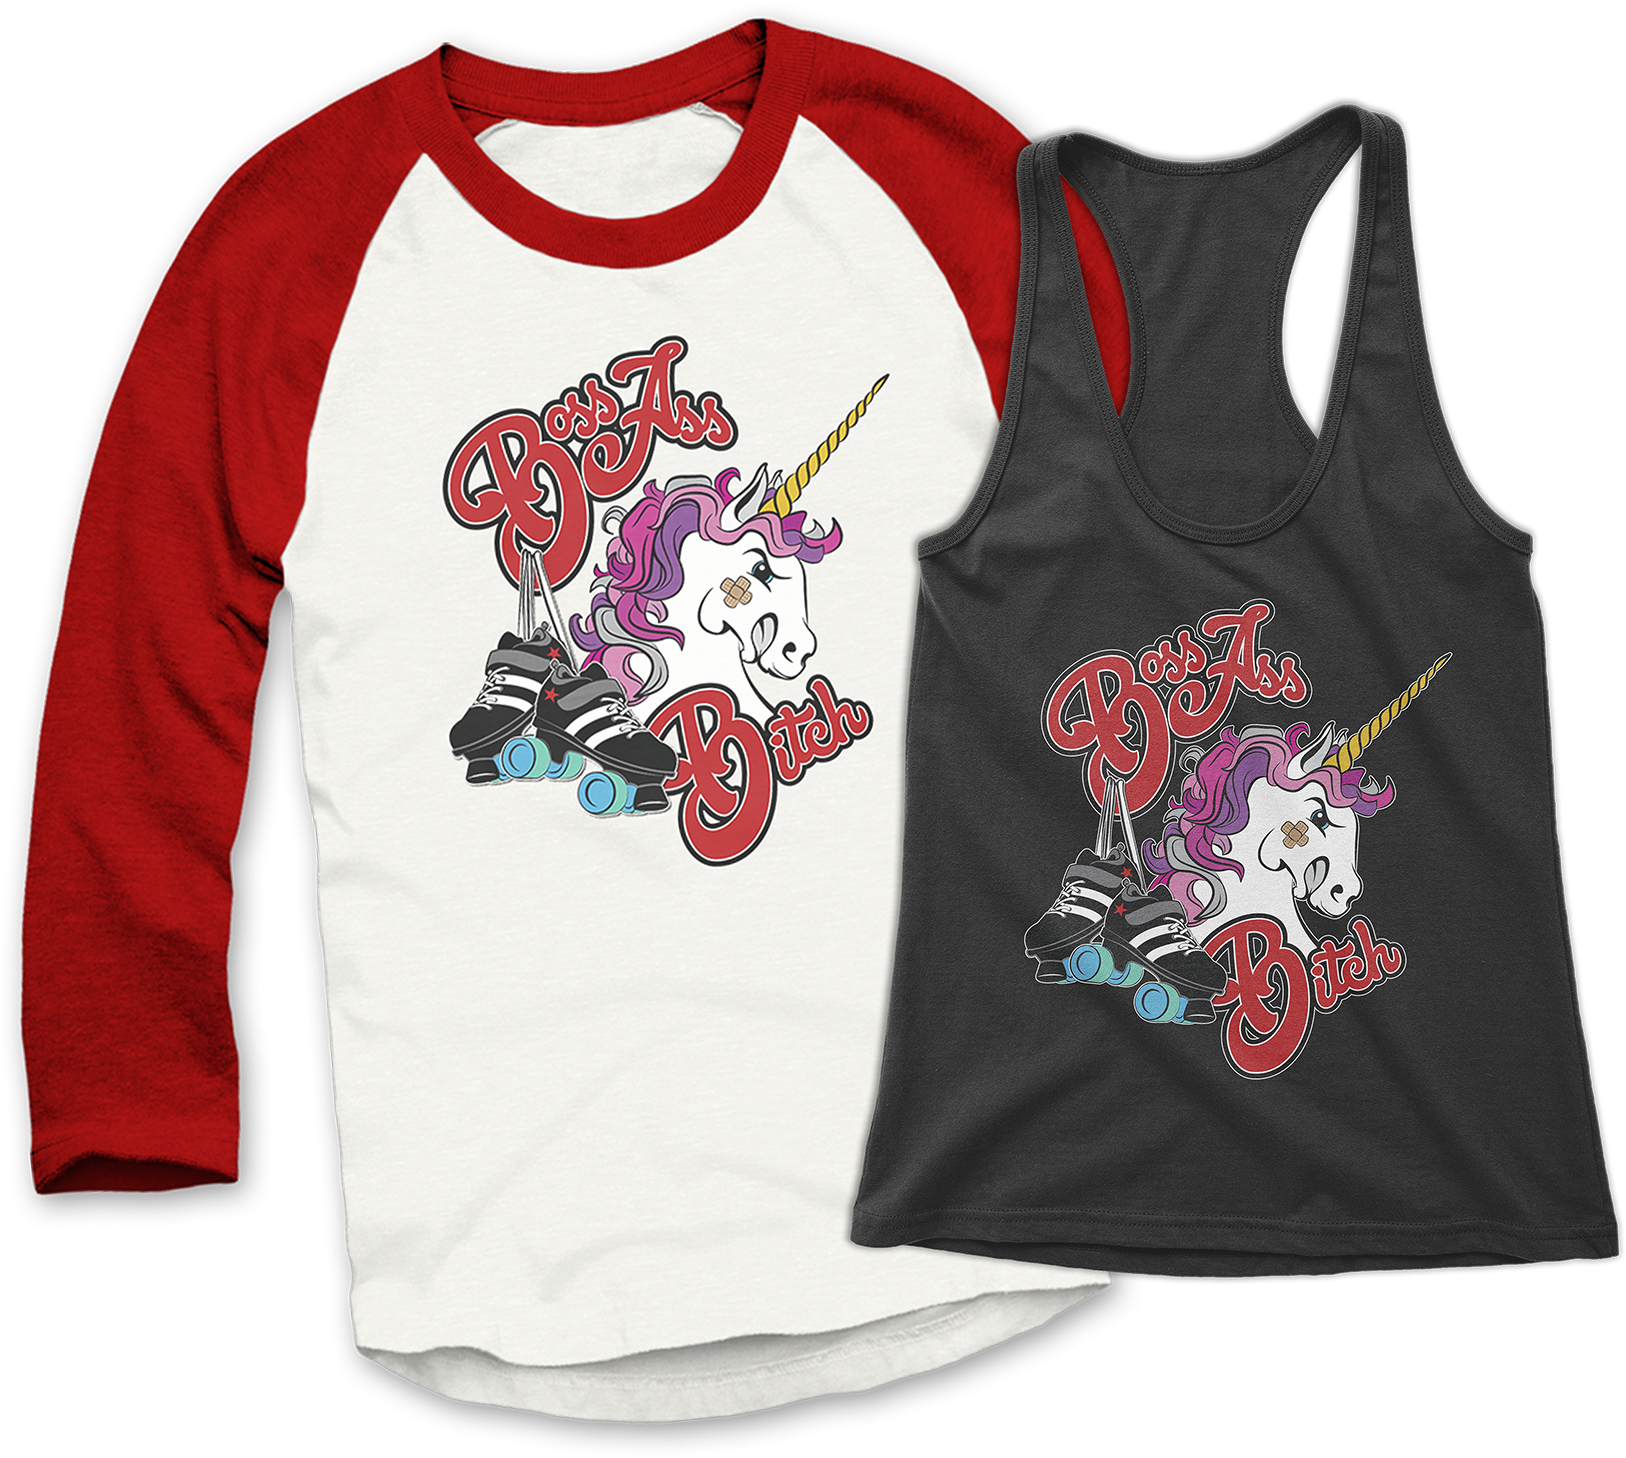 Derby Boss baseball tee and tank top